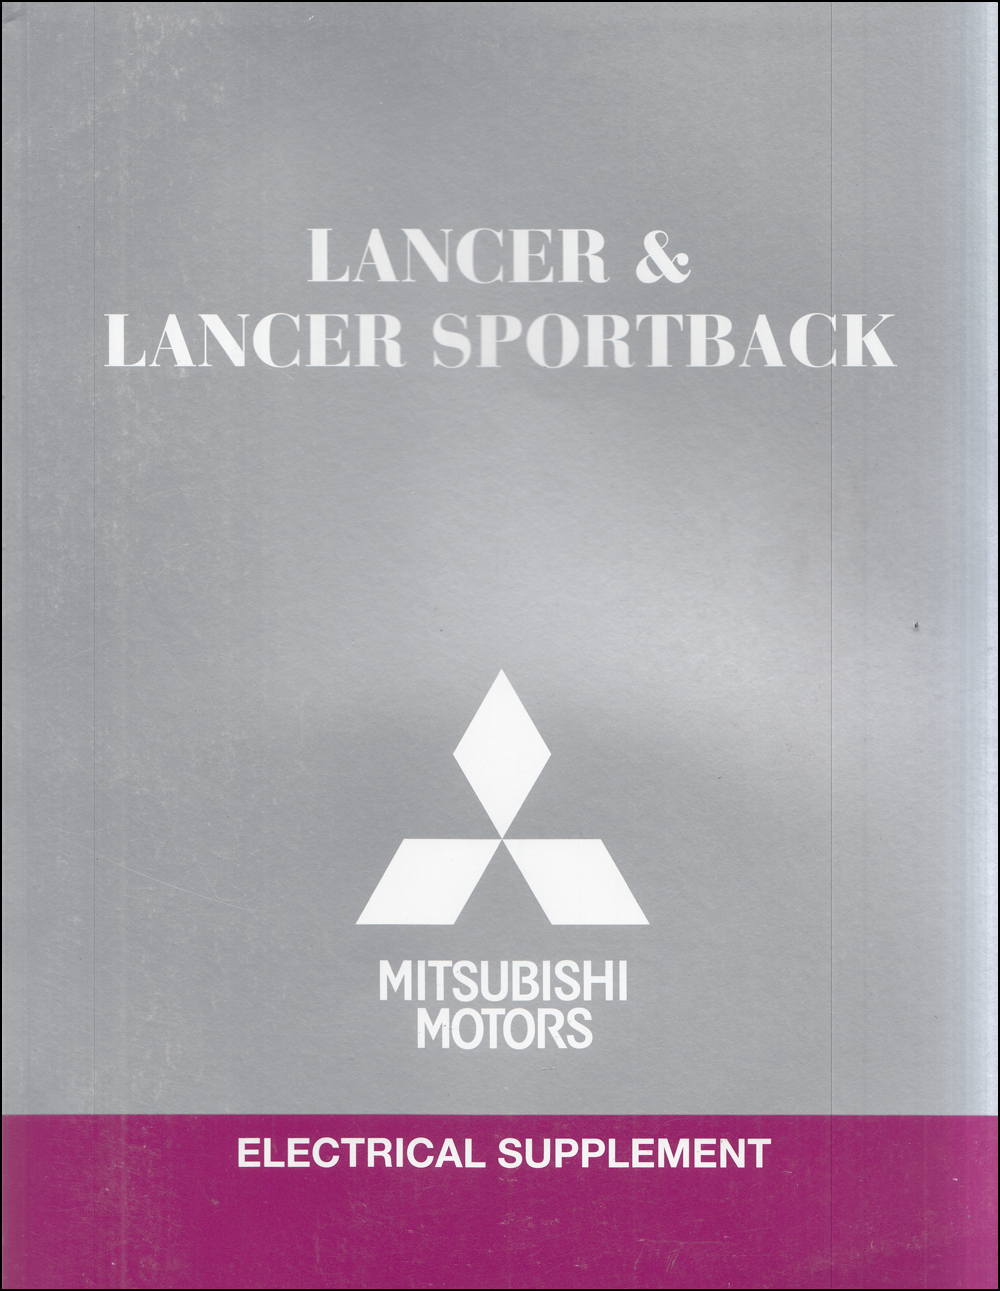 2017 Mitsubishi Lancer & Lancer Sportback Wiring Diagram Manual Original